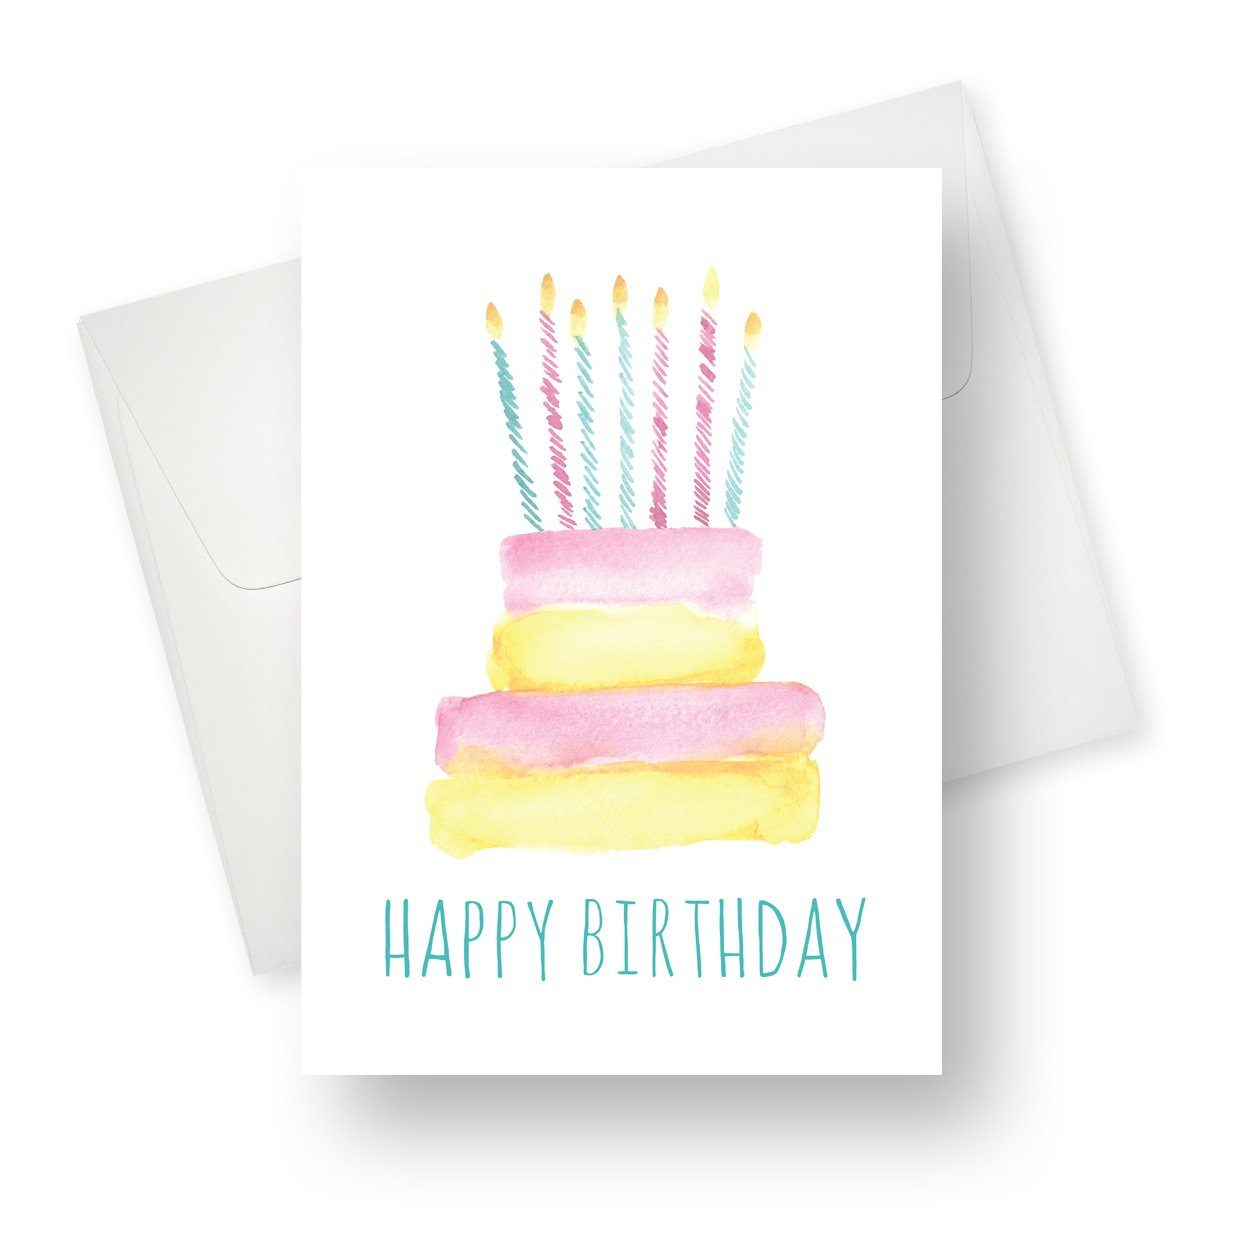 'Birthday Cake and Candles' Card - Northern Cards